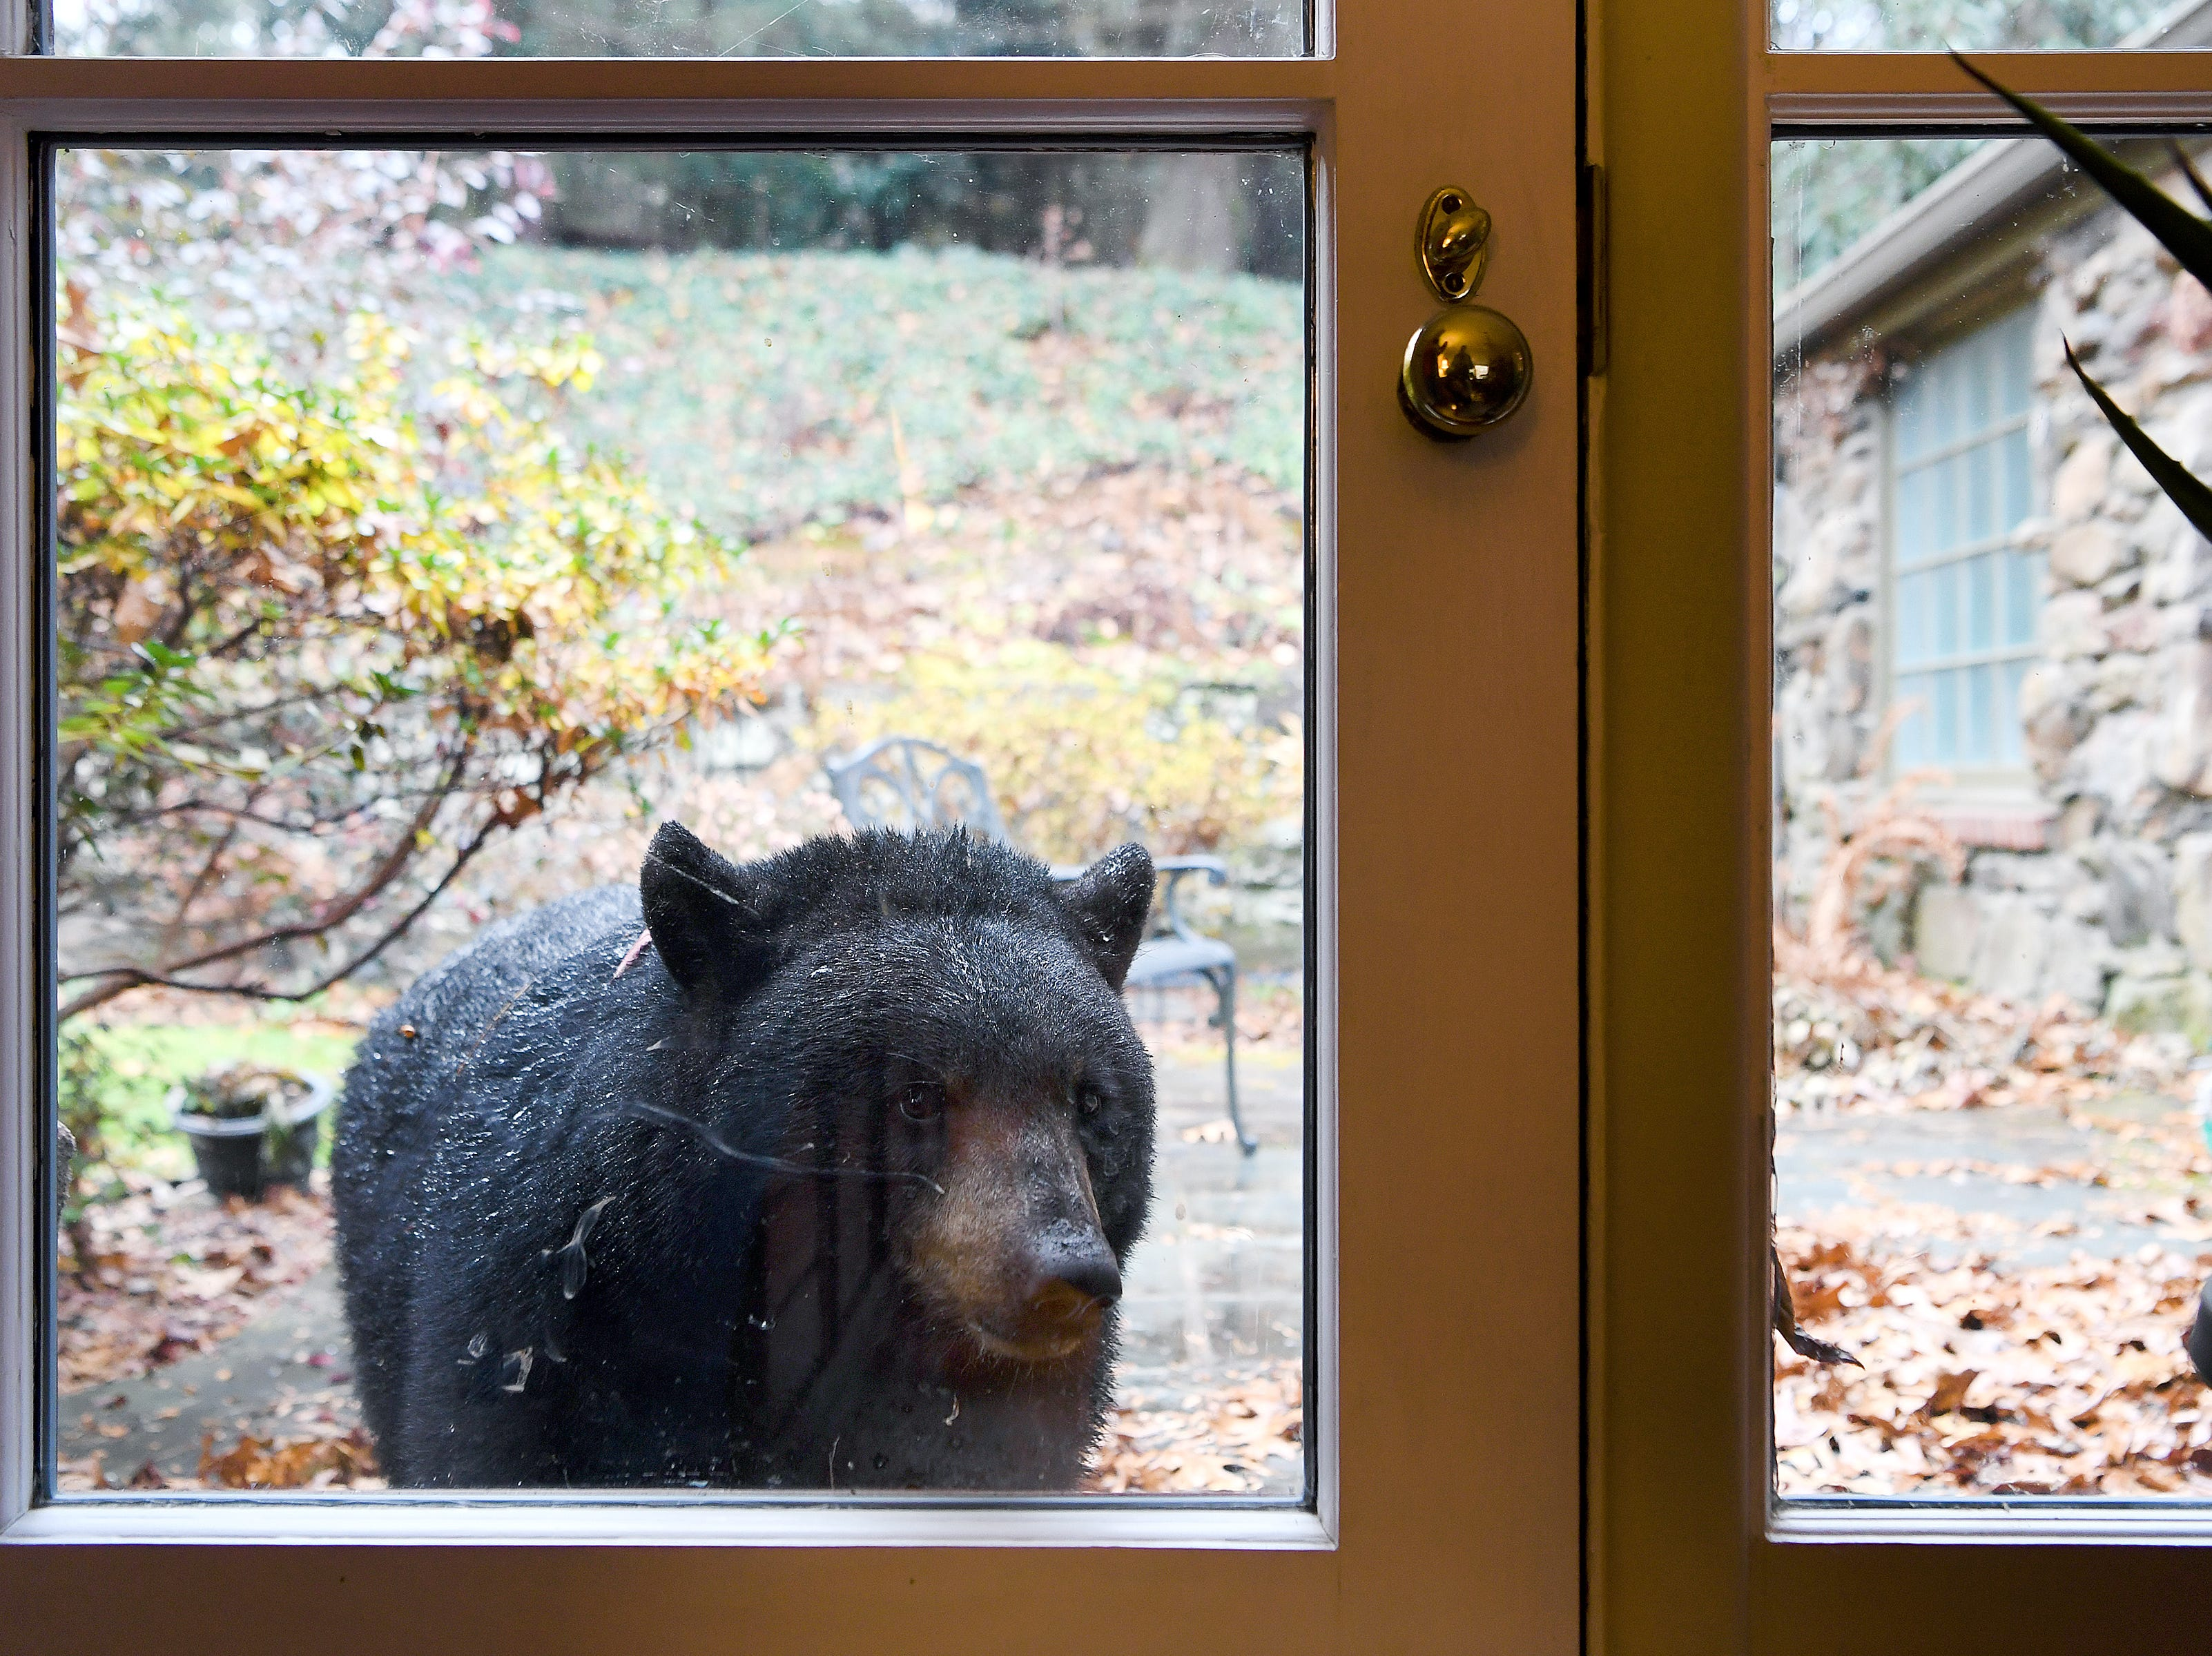 A black bear peeks through the patio door of Len Brinson's North Asheville home on Nov. 30, 2018. The bear made itself a spot to sleep and Brinson feared it would try to hibernate in his yard. He was eventually able to get the bear to leave by shining a floodlight overnight.